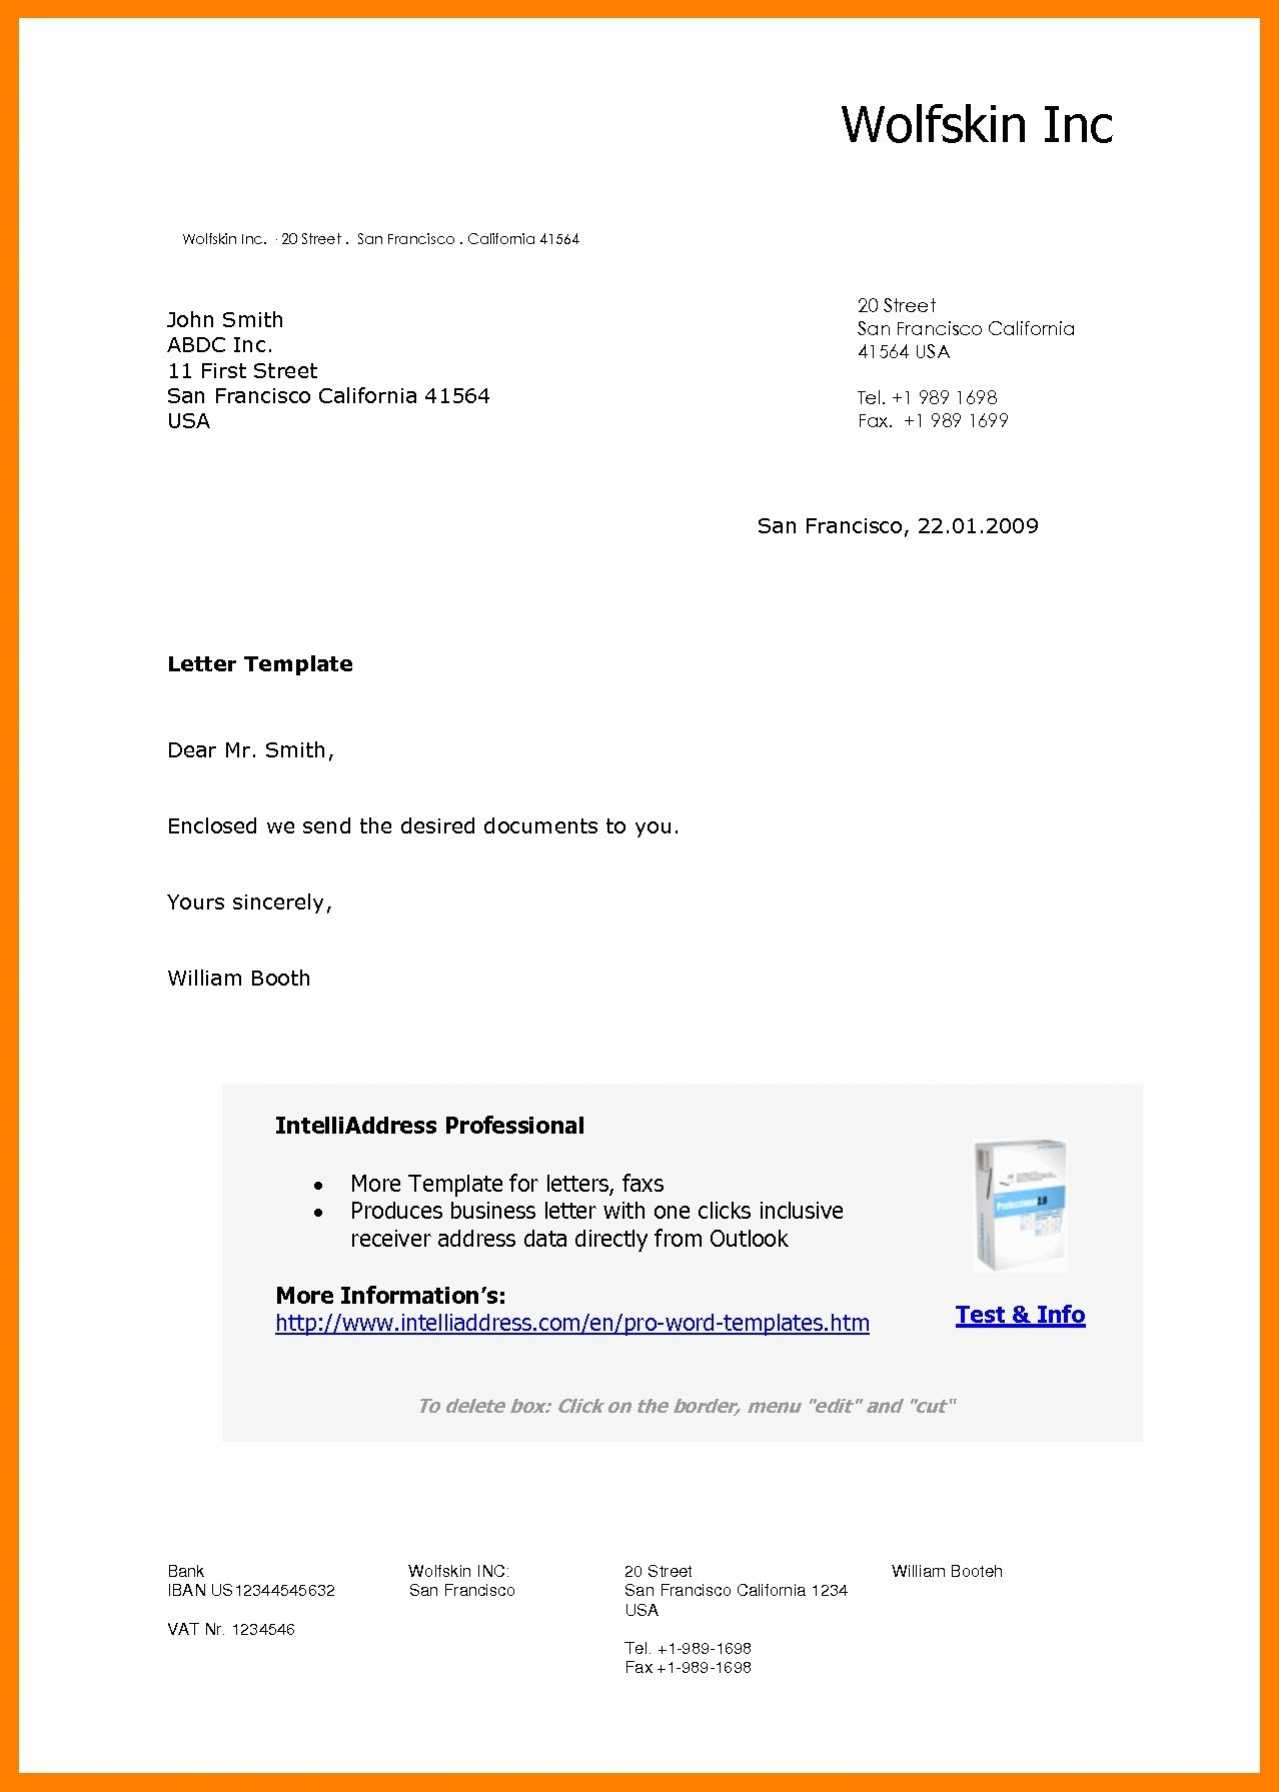 Free Letter Santa Template Download - Beautiful Free Cover Letter Template Word